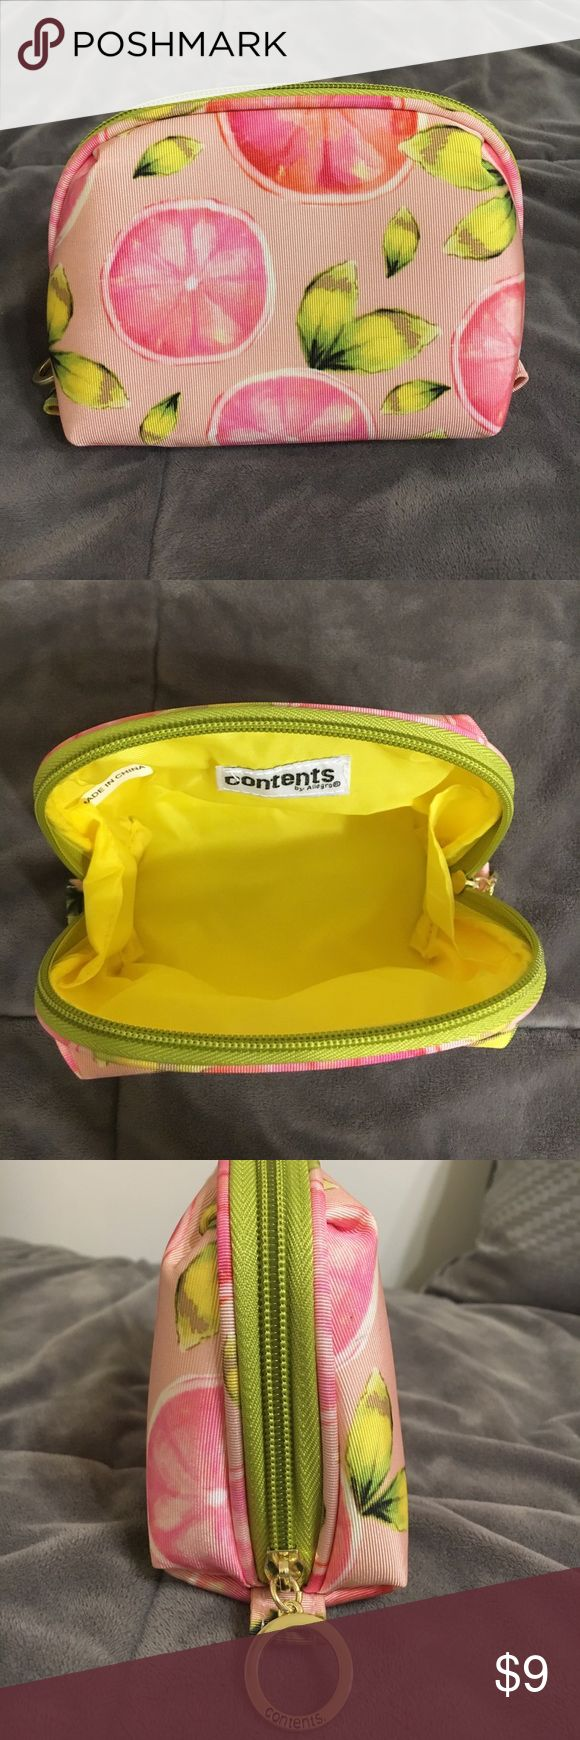 Small Contents Makeup Bag Pink Lemon Print super cute small makeup bag!! perfect condition, never used! by the brand contents:)) would make a great travel bag for jewelry or makeup! contents Bags Cosmetic Bags & Cases